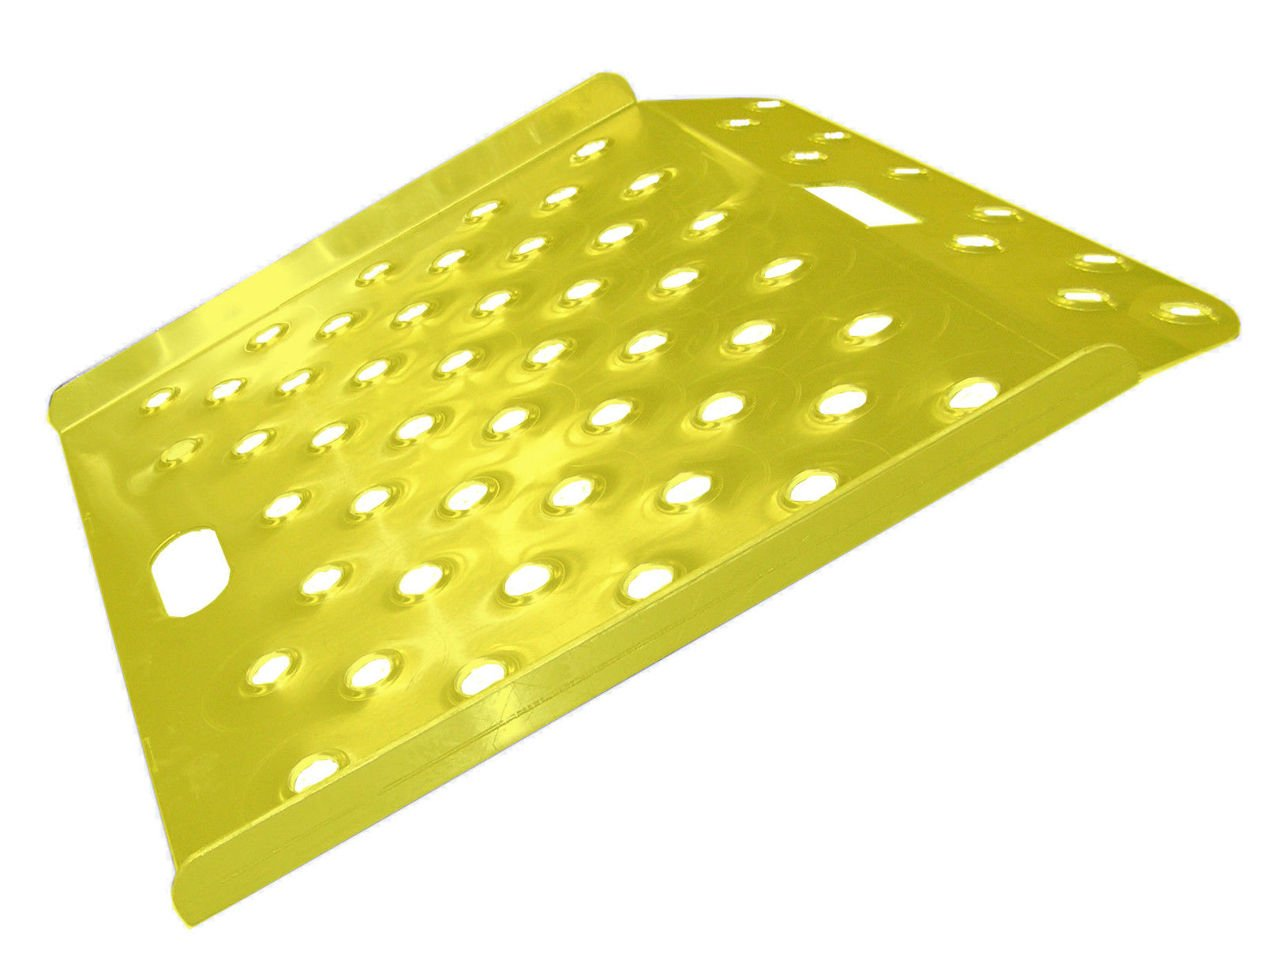 New Safety Yellow Wedge Style Perforated Aluminum Curb Ramp - 26'' x 18'' 600# Cap